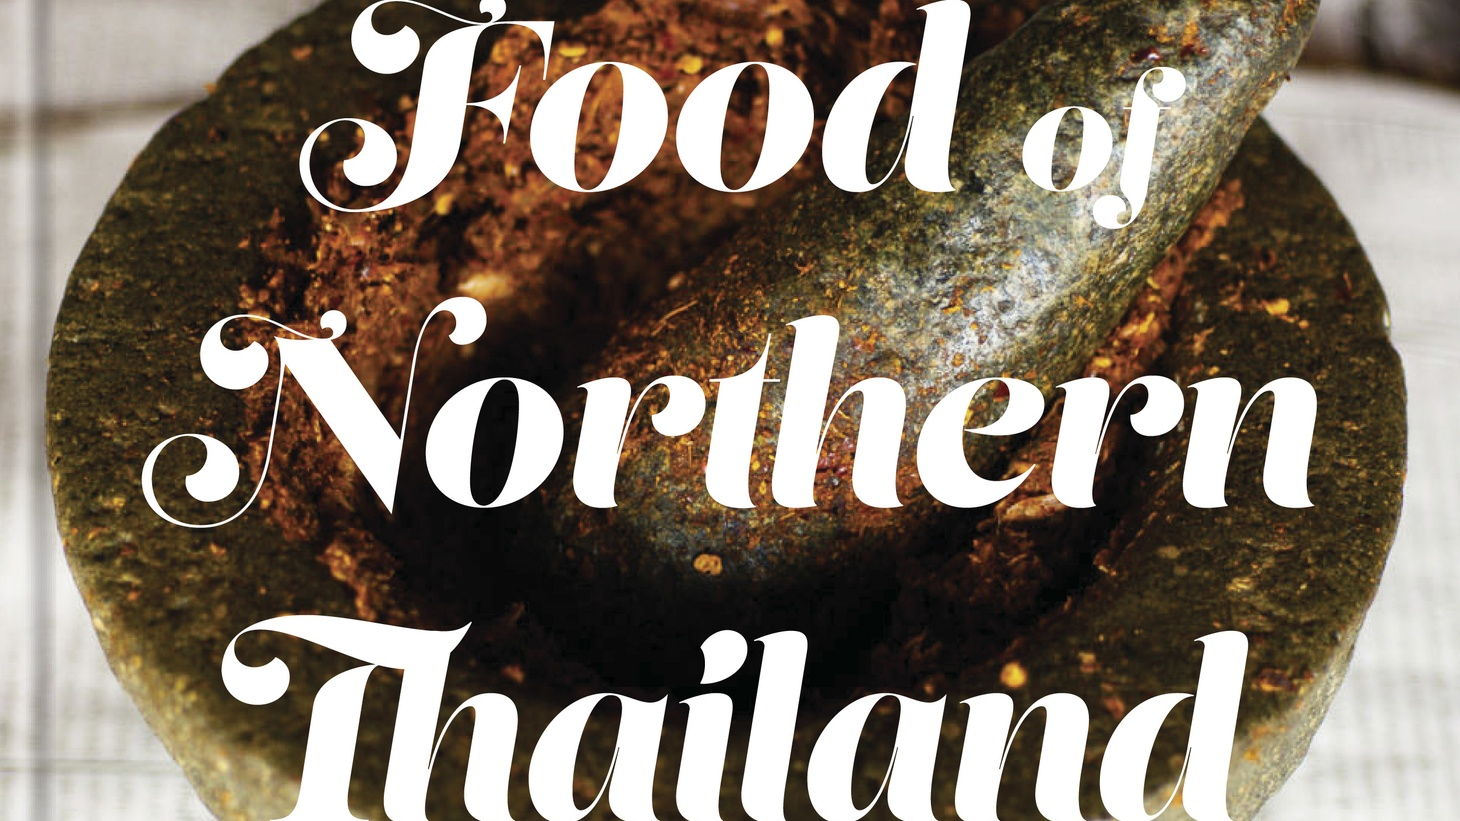 Reprinted from The Food of Northern Thailand. Copyright © 2018 by Austin Bush. Photographs copyright © 2018 by Austin Bush. Published by Clarkson Potter.